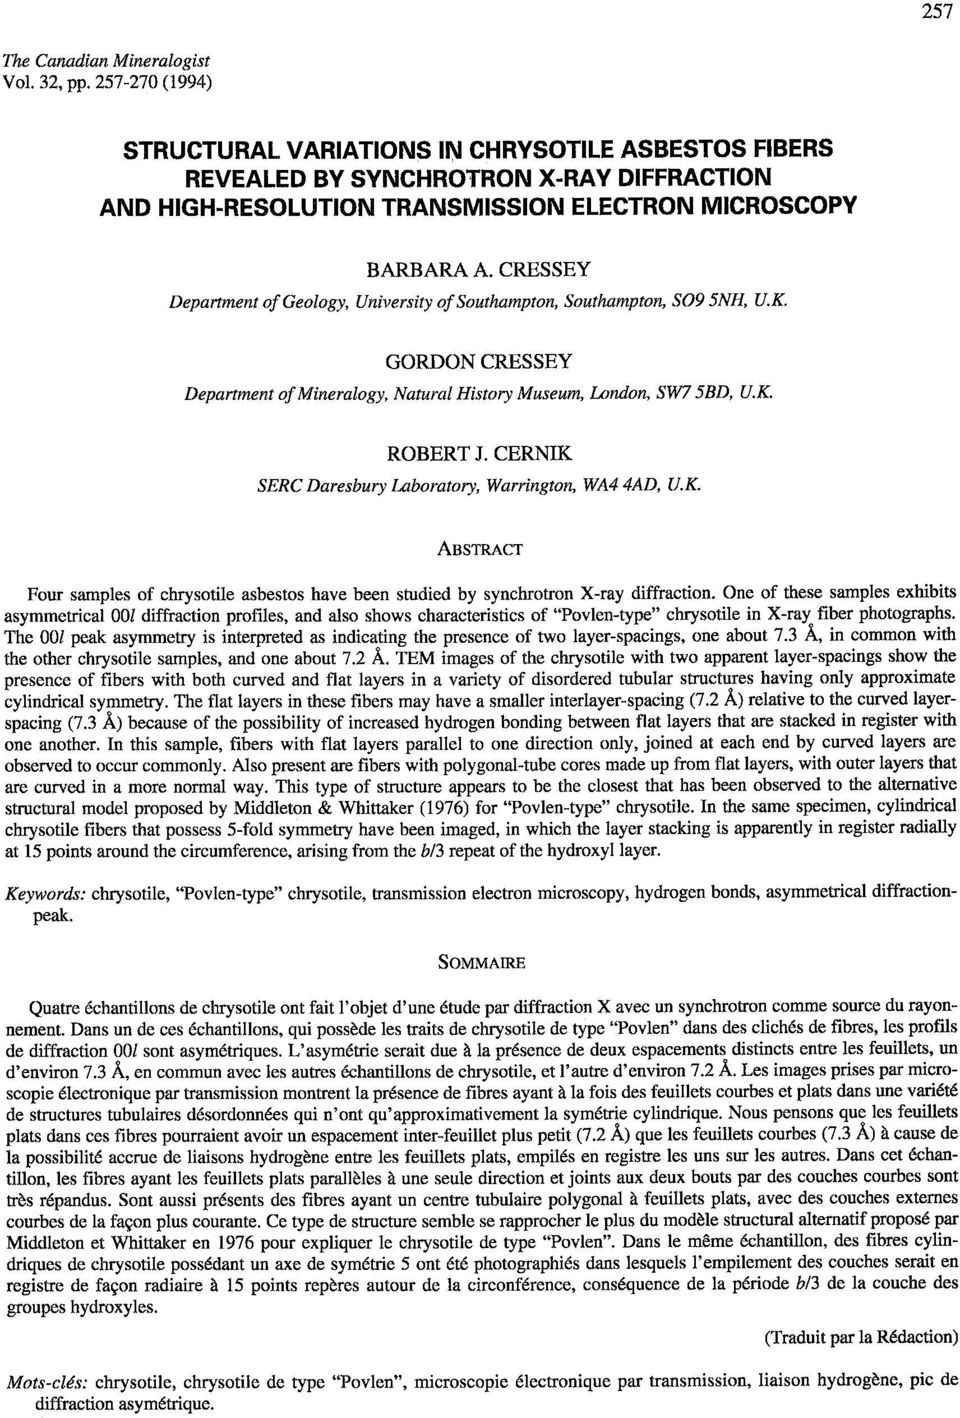 K: GORDONCRESSEY Deprtment of Minerlogy, Nnrl History Museum, Inndon, SW7 5BD, U.K ROBERTJ. CERNIK SERC Dresbury lbortory, Wrrington, WA4 4AD, U.K. ABSTRACT Four smples of chrysotile sbestos hve been studied by synchrotron X-ry diffrction.